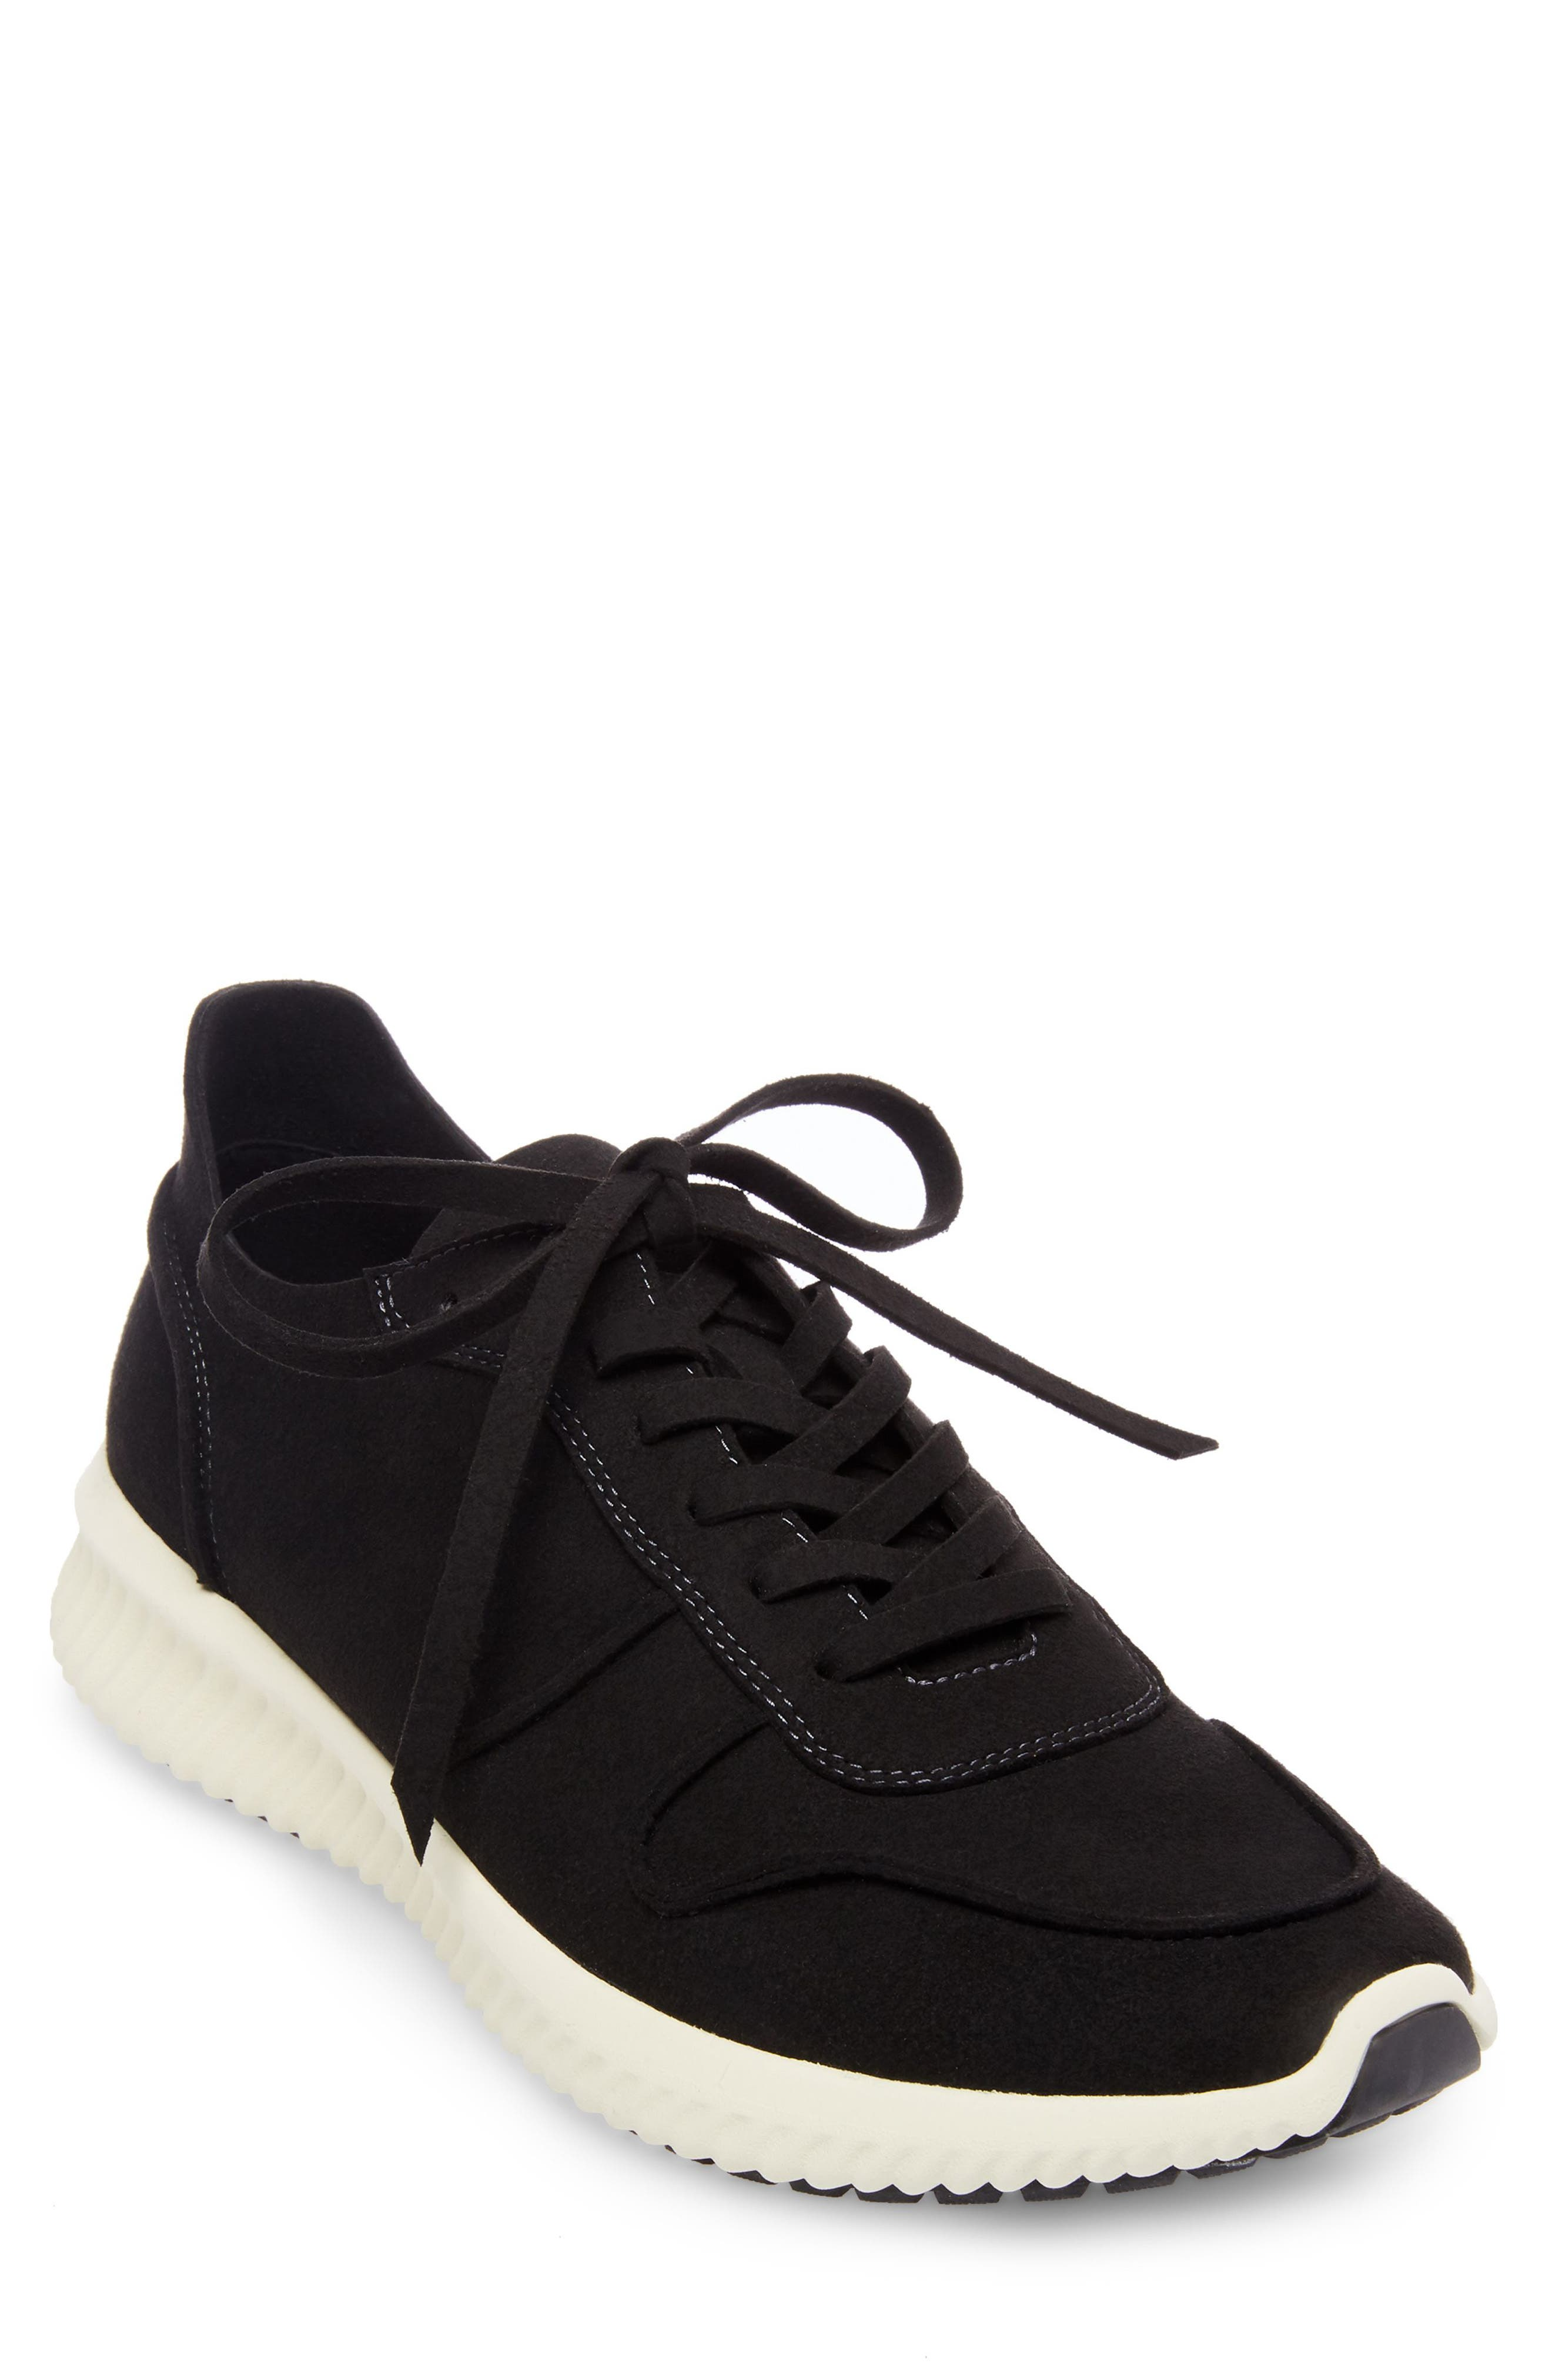 Rolf Low Top Sneaker,                         Main,                         color, BLACK LEATHER